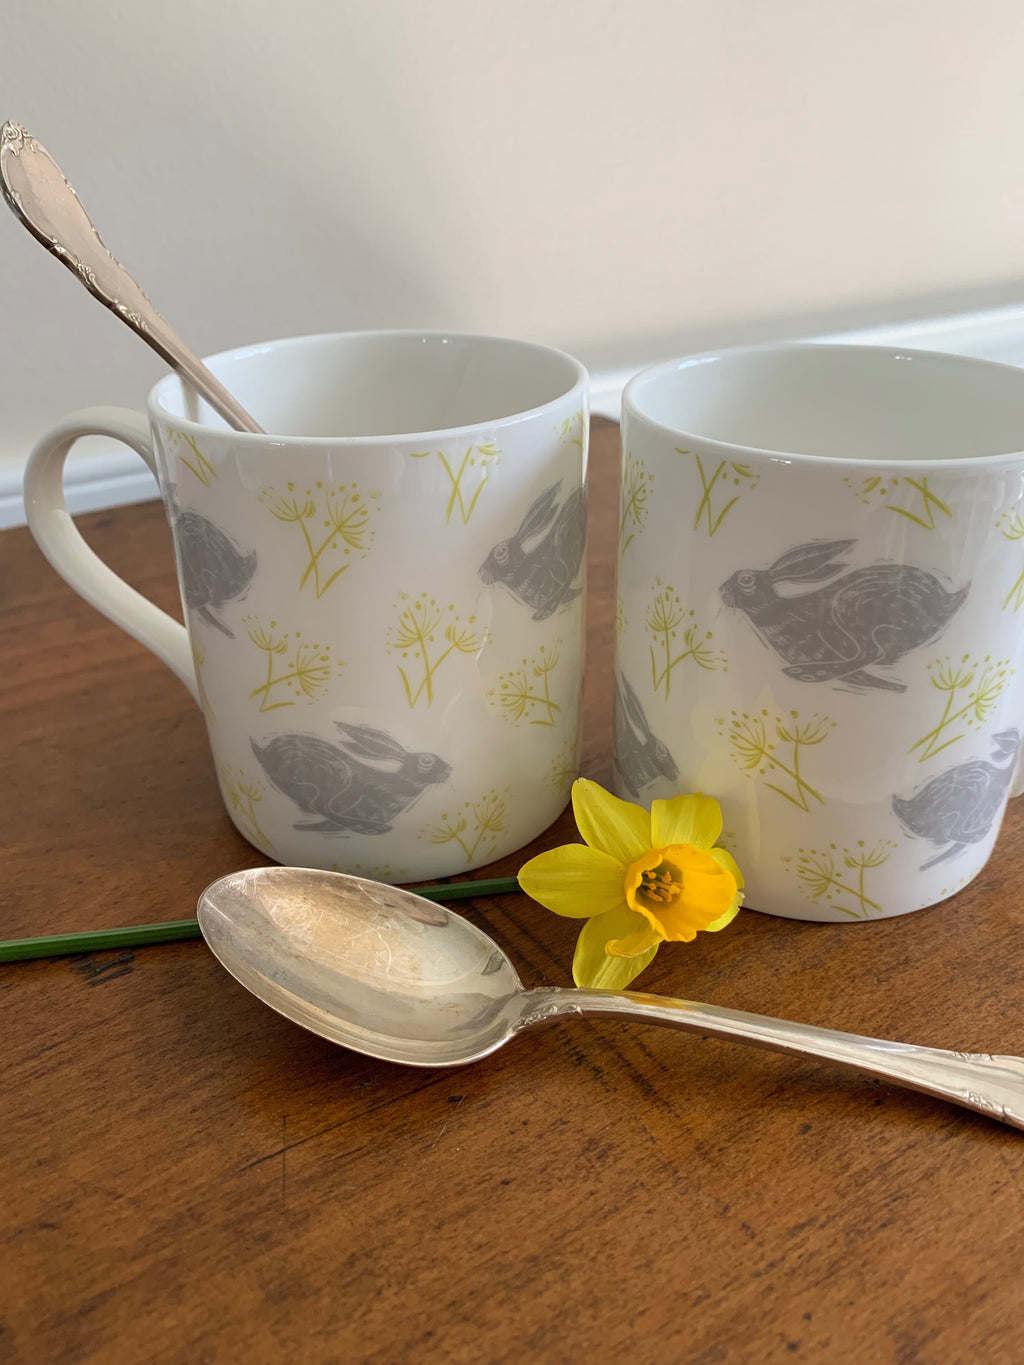 Briton Home fine bone china mugs, grey and yellow bunnies by Sam Wilson